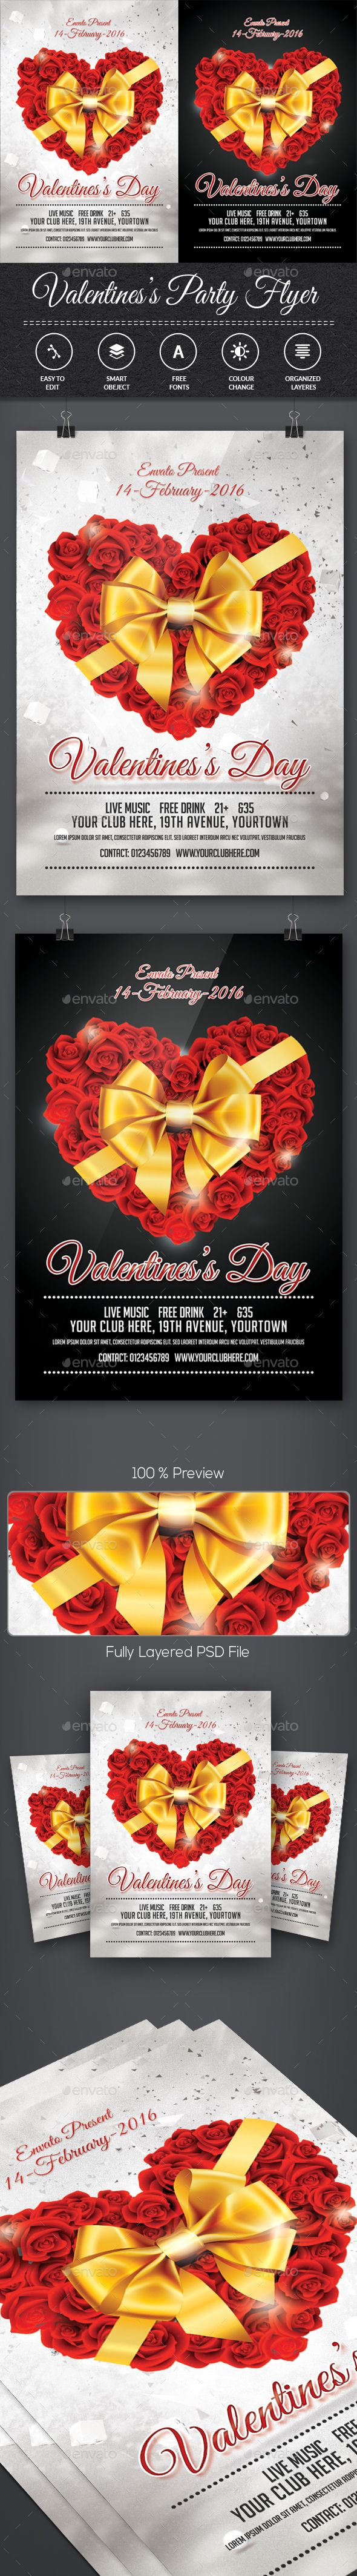 1fc5d589b28a293a5942e373ed603429 love days valentine party - Valentines Day Flyer #retro #wedding • Download here → graphicriver.net/...